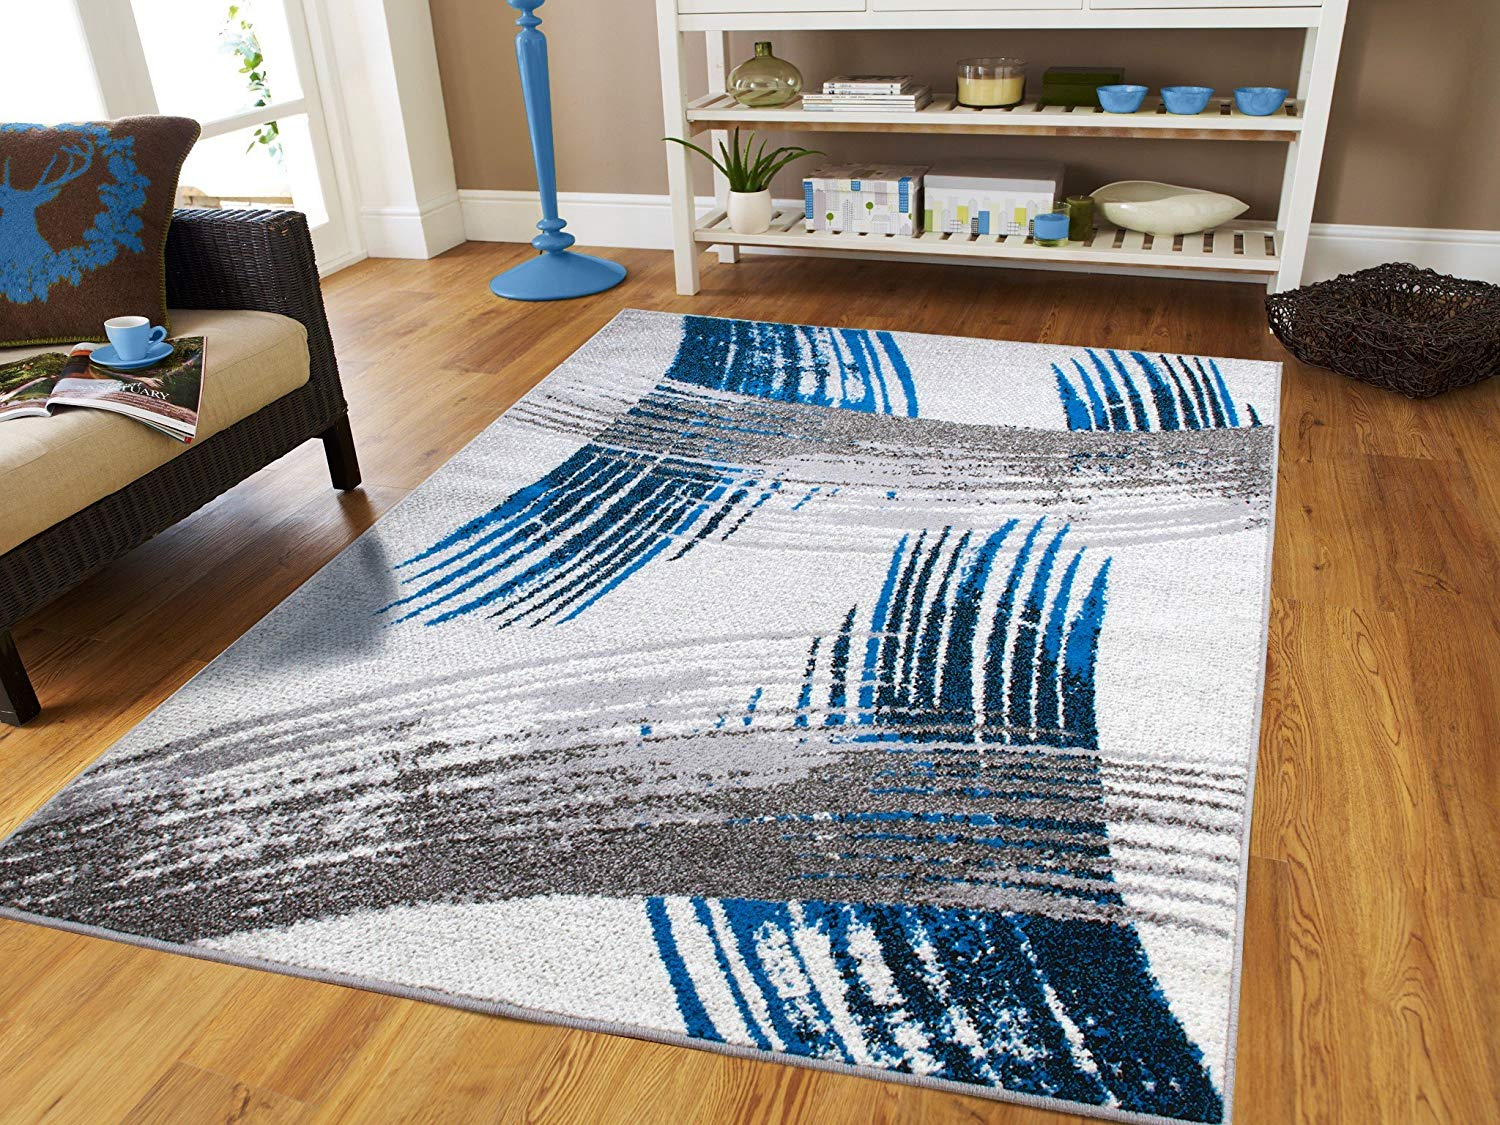 Details about modern rugs